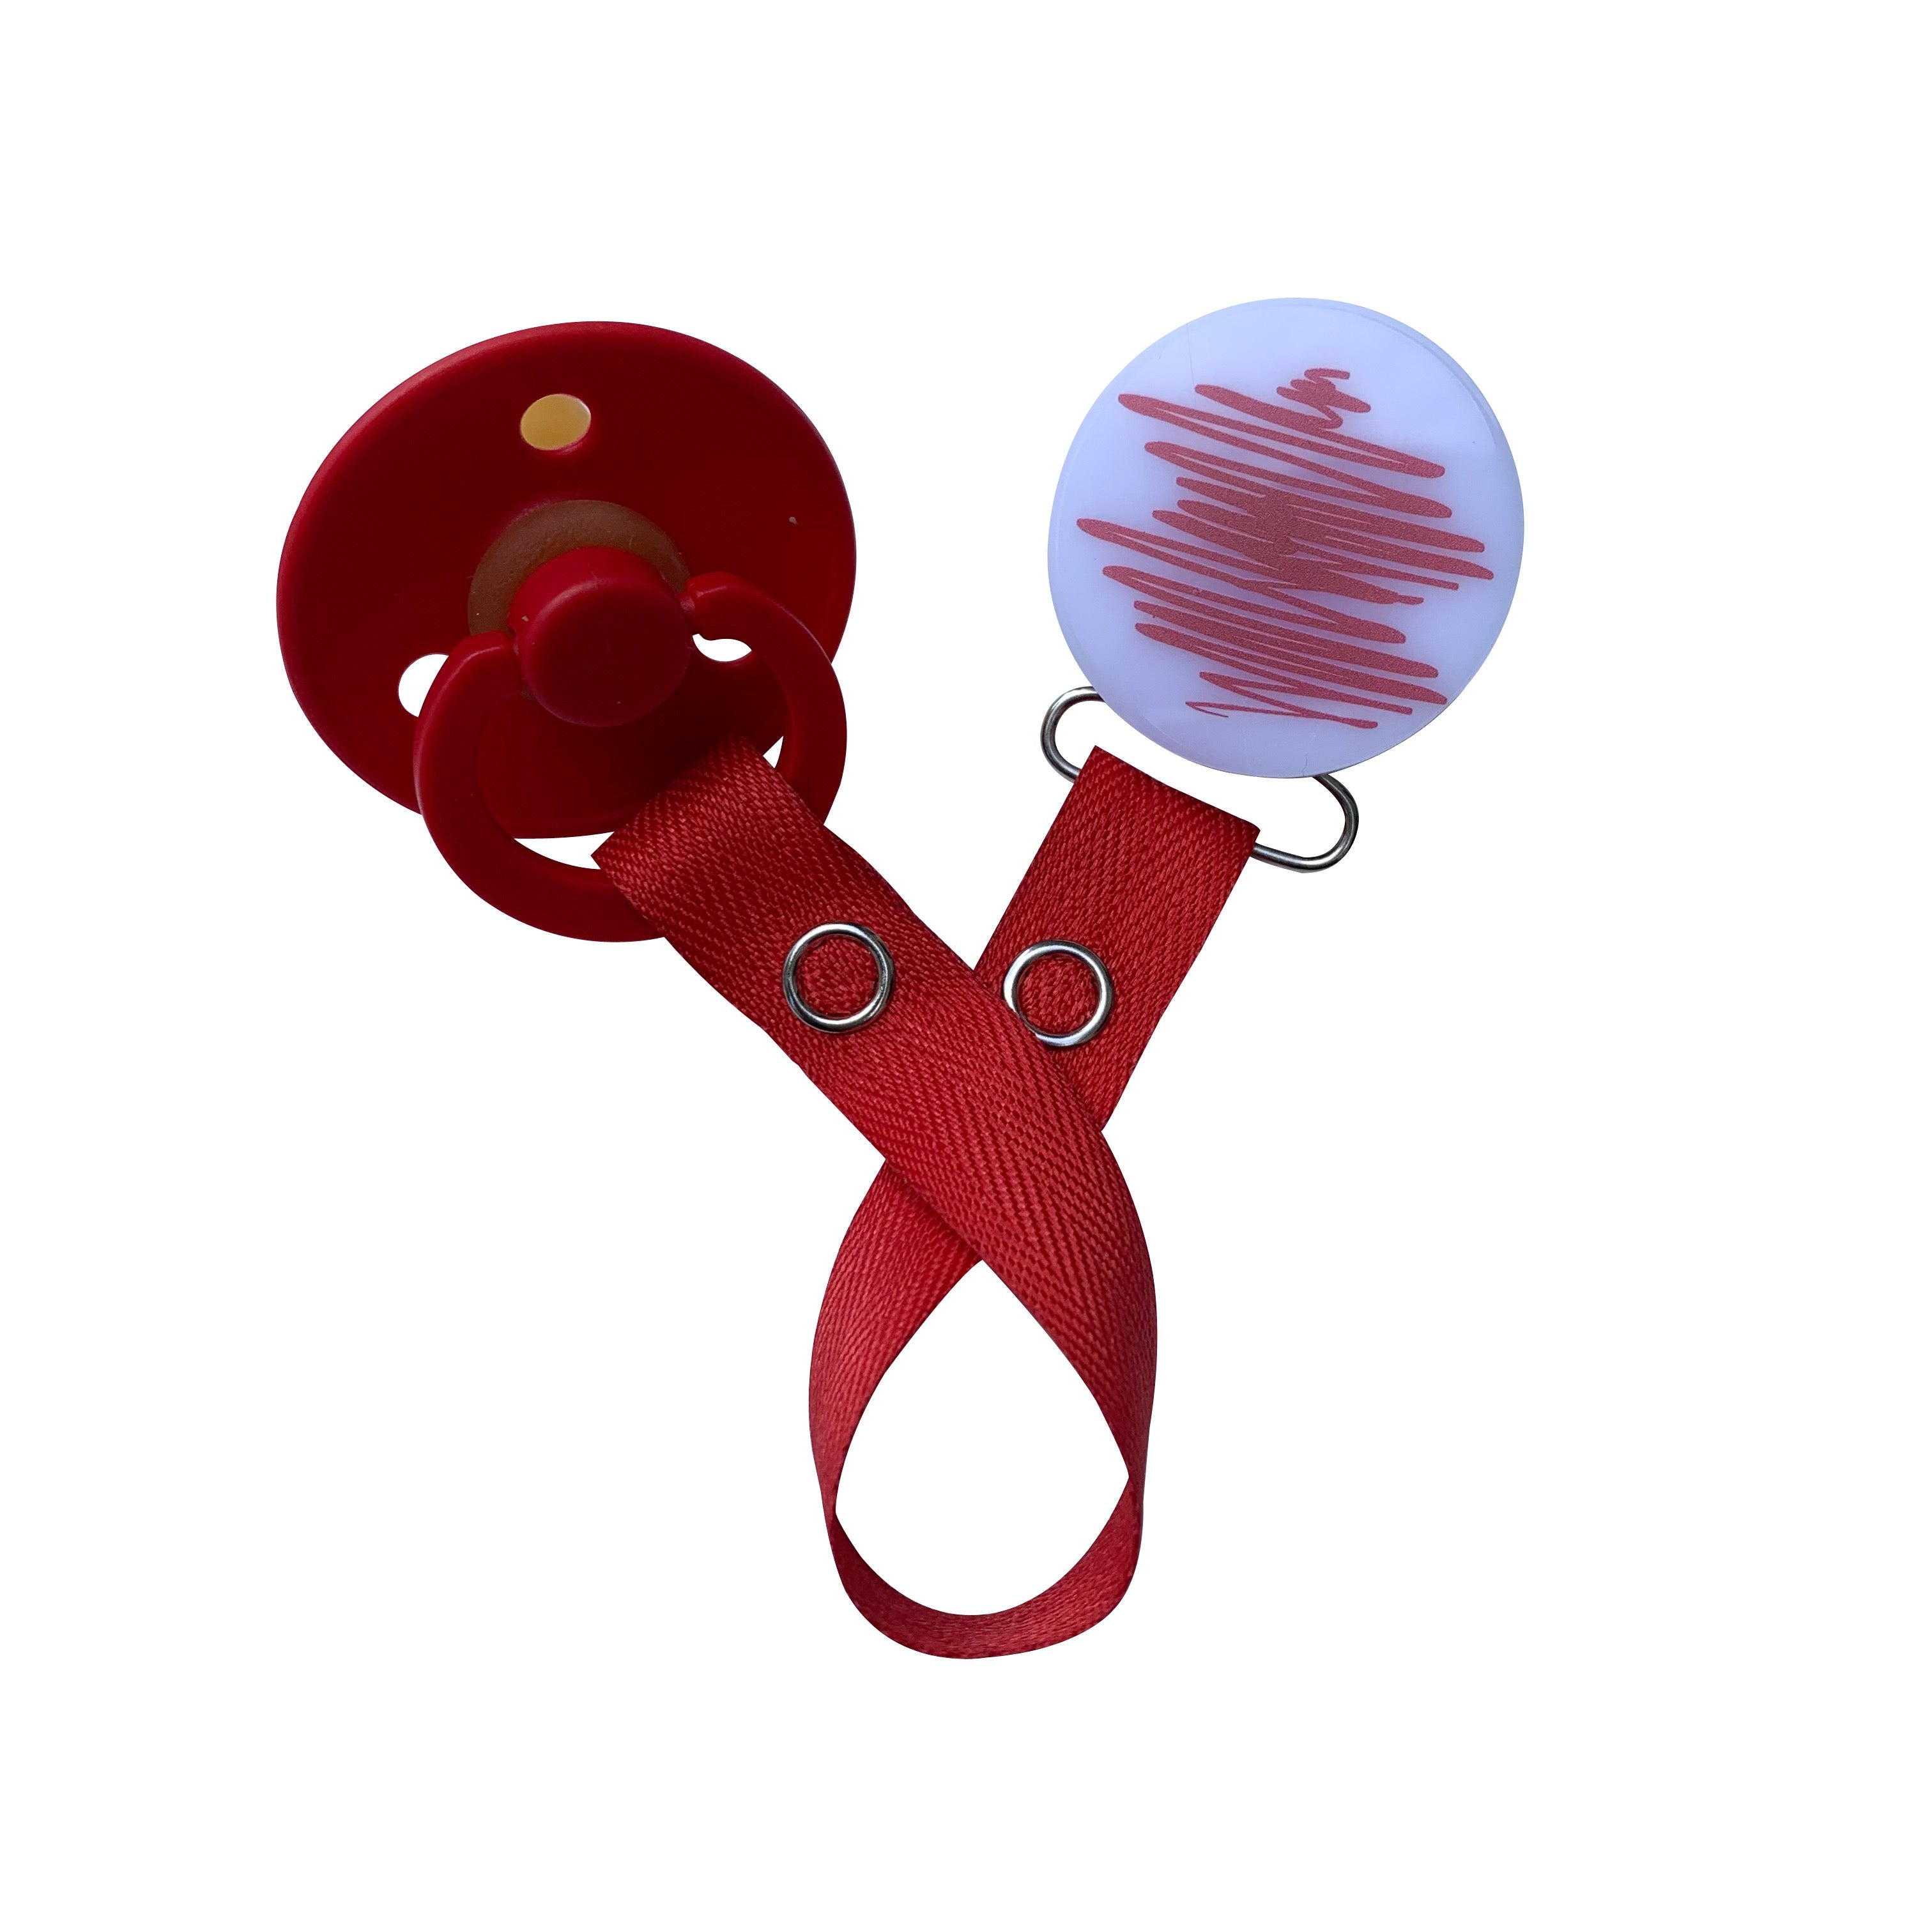 Classy Paci Doodle Red Round clip with Bibs pacifier GIFT SET